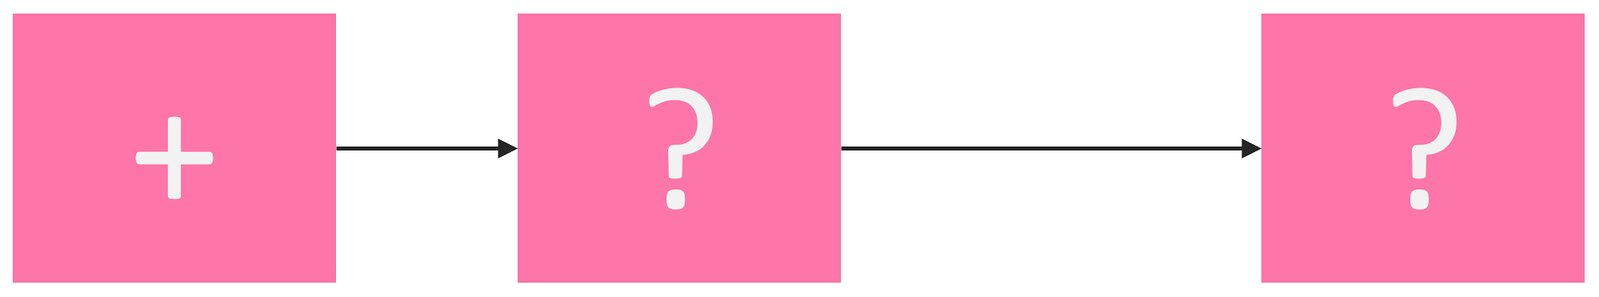 A pink block flowing over time to a pink block with a question mark flowing over a longer time to another pink block with a question mark.